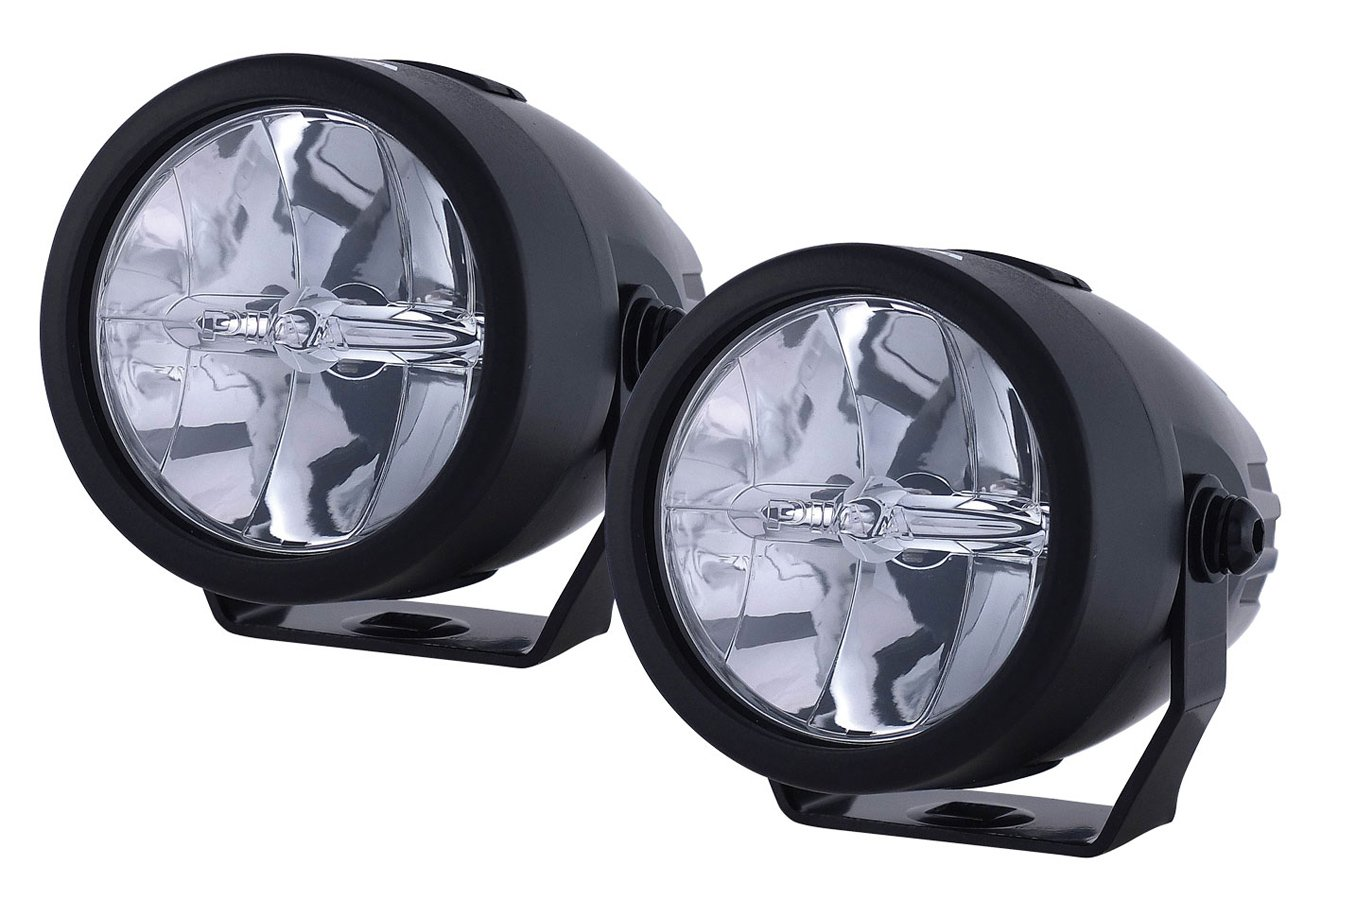 Piaa Lp270 Series Led Driving Amp Fog Lights Free Shipping